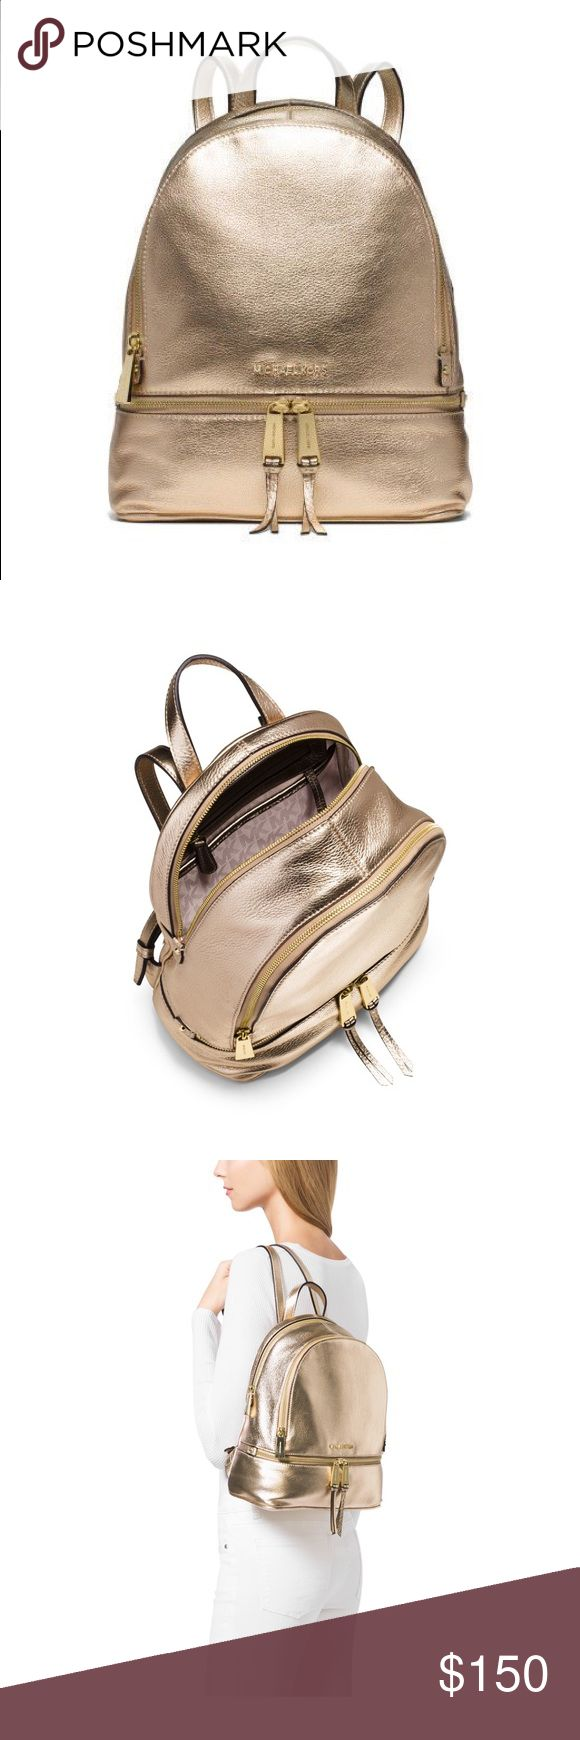 Michael Kors Gold metallic backpack Laid-back yet luxe the Rhea backpack redefines big-city accessorizing. We love the combination of shimmering metallic Venus leather and a simple streamlined silhouette. With its multiple zipper pockets and delicate shoulder straps it's a gl amorous take on an enduring design. Size: One size. Color: Pale Gold(Gold). There is a small blemish on the front of the bag but leather cleaner may take it off. I haven't tried. Other than that it's in mint condition…